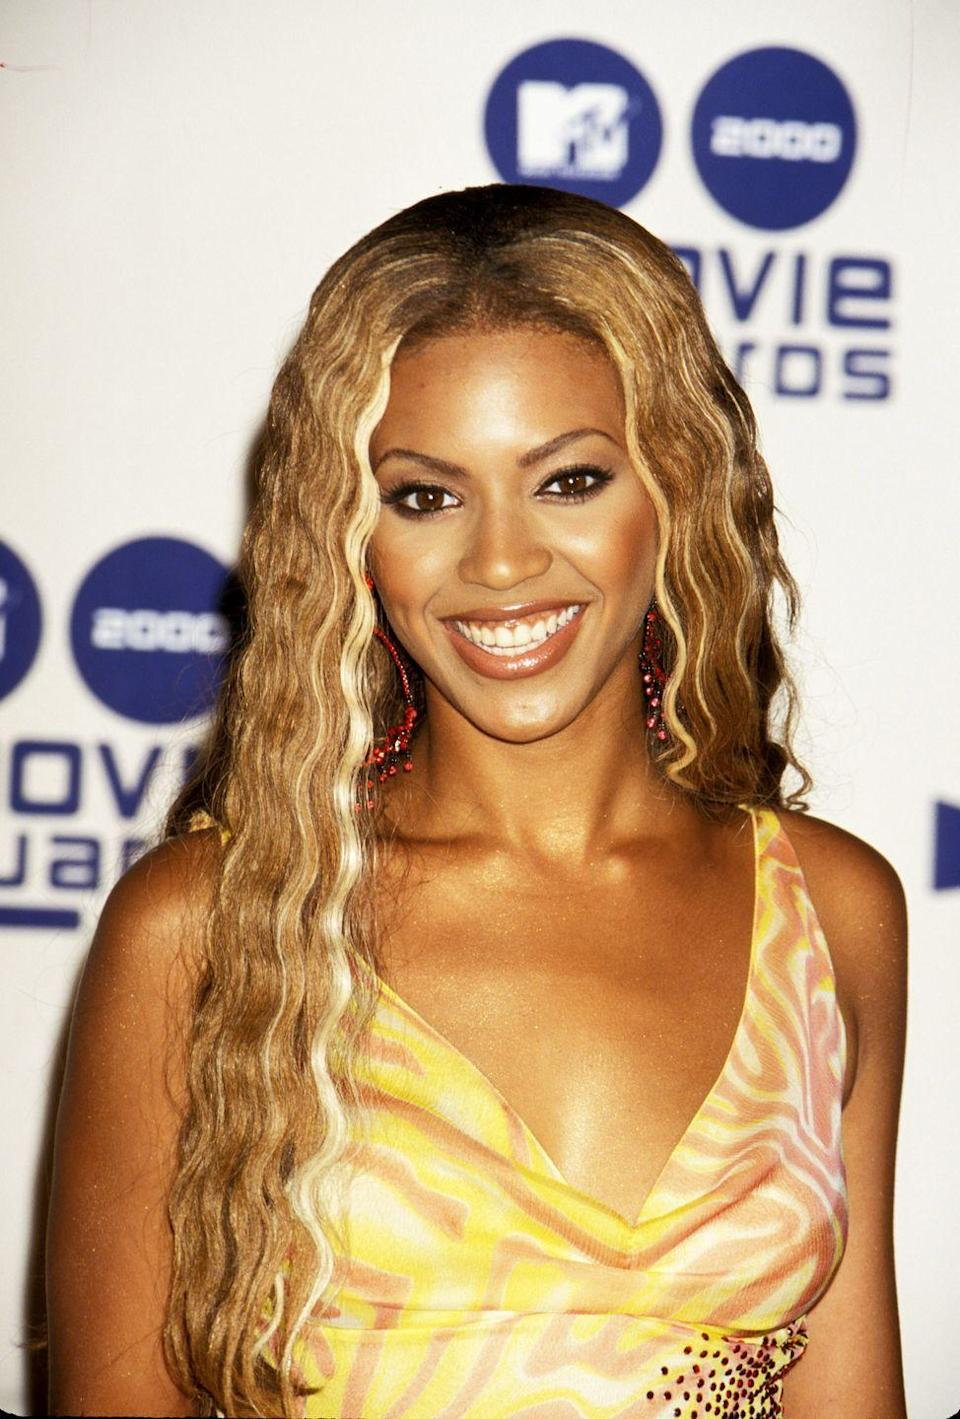 "<p>The 2000s started to see more current-feeling colors and cuts. Case in point: Beyonce's wavy, <a href=""https://www.goodhousekeeping.com/beauty/hair/news/g2443/blonde-hair-color-ideas/"" rel=""nofollow noopener"" target=""_blank"" data-ylk=""slk:honey blonde"" class=""link rapid-noclick-resp"">honey blonde</a> hair.</p>"